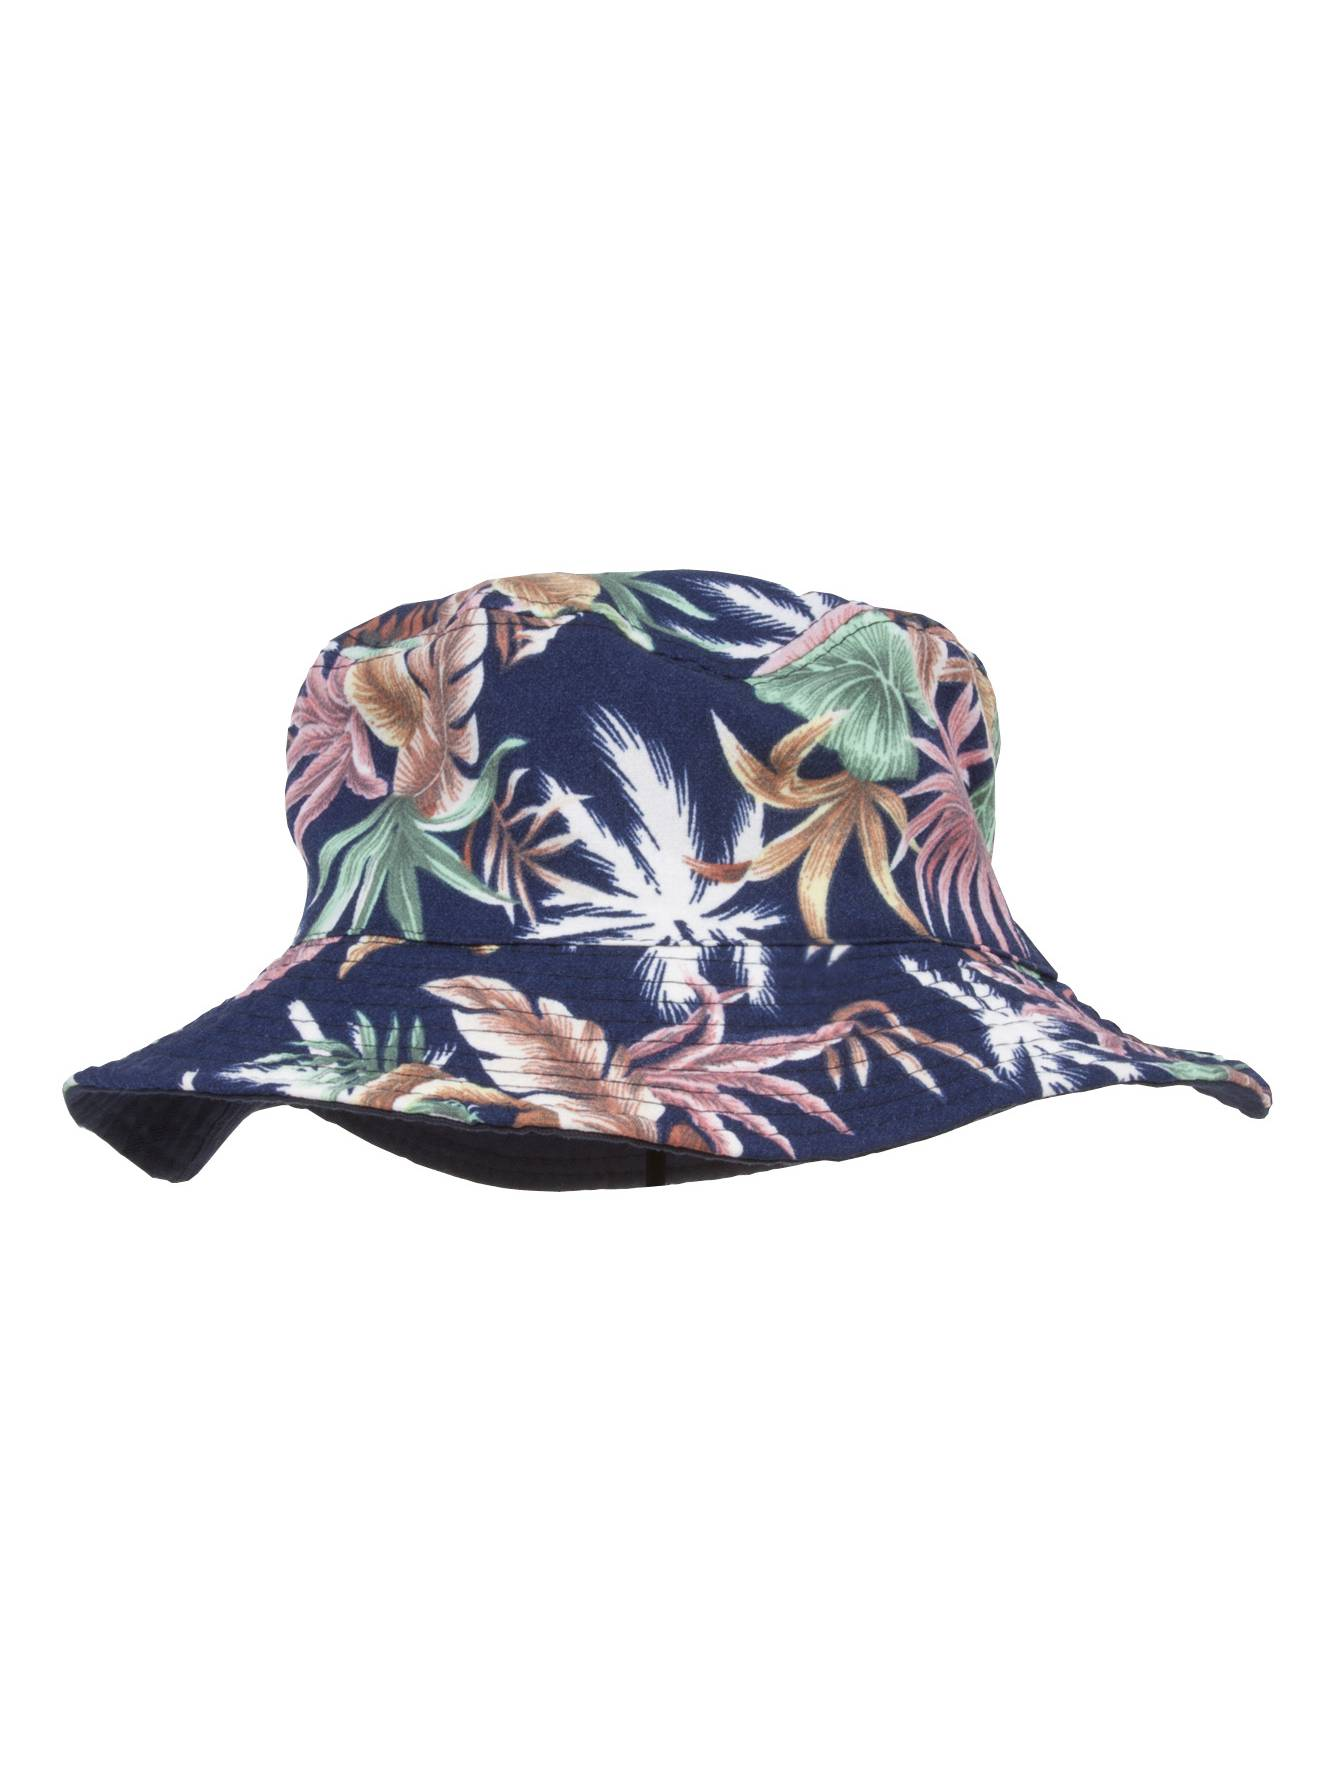 430041c6bde Top Headwear Floral Bucket Hats - Walmart.com